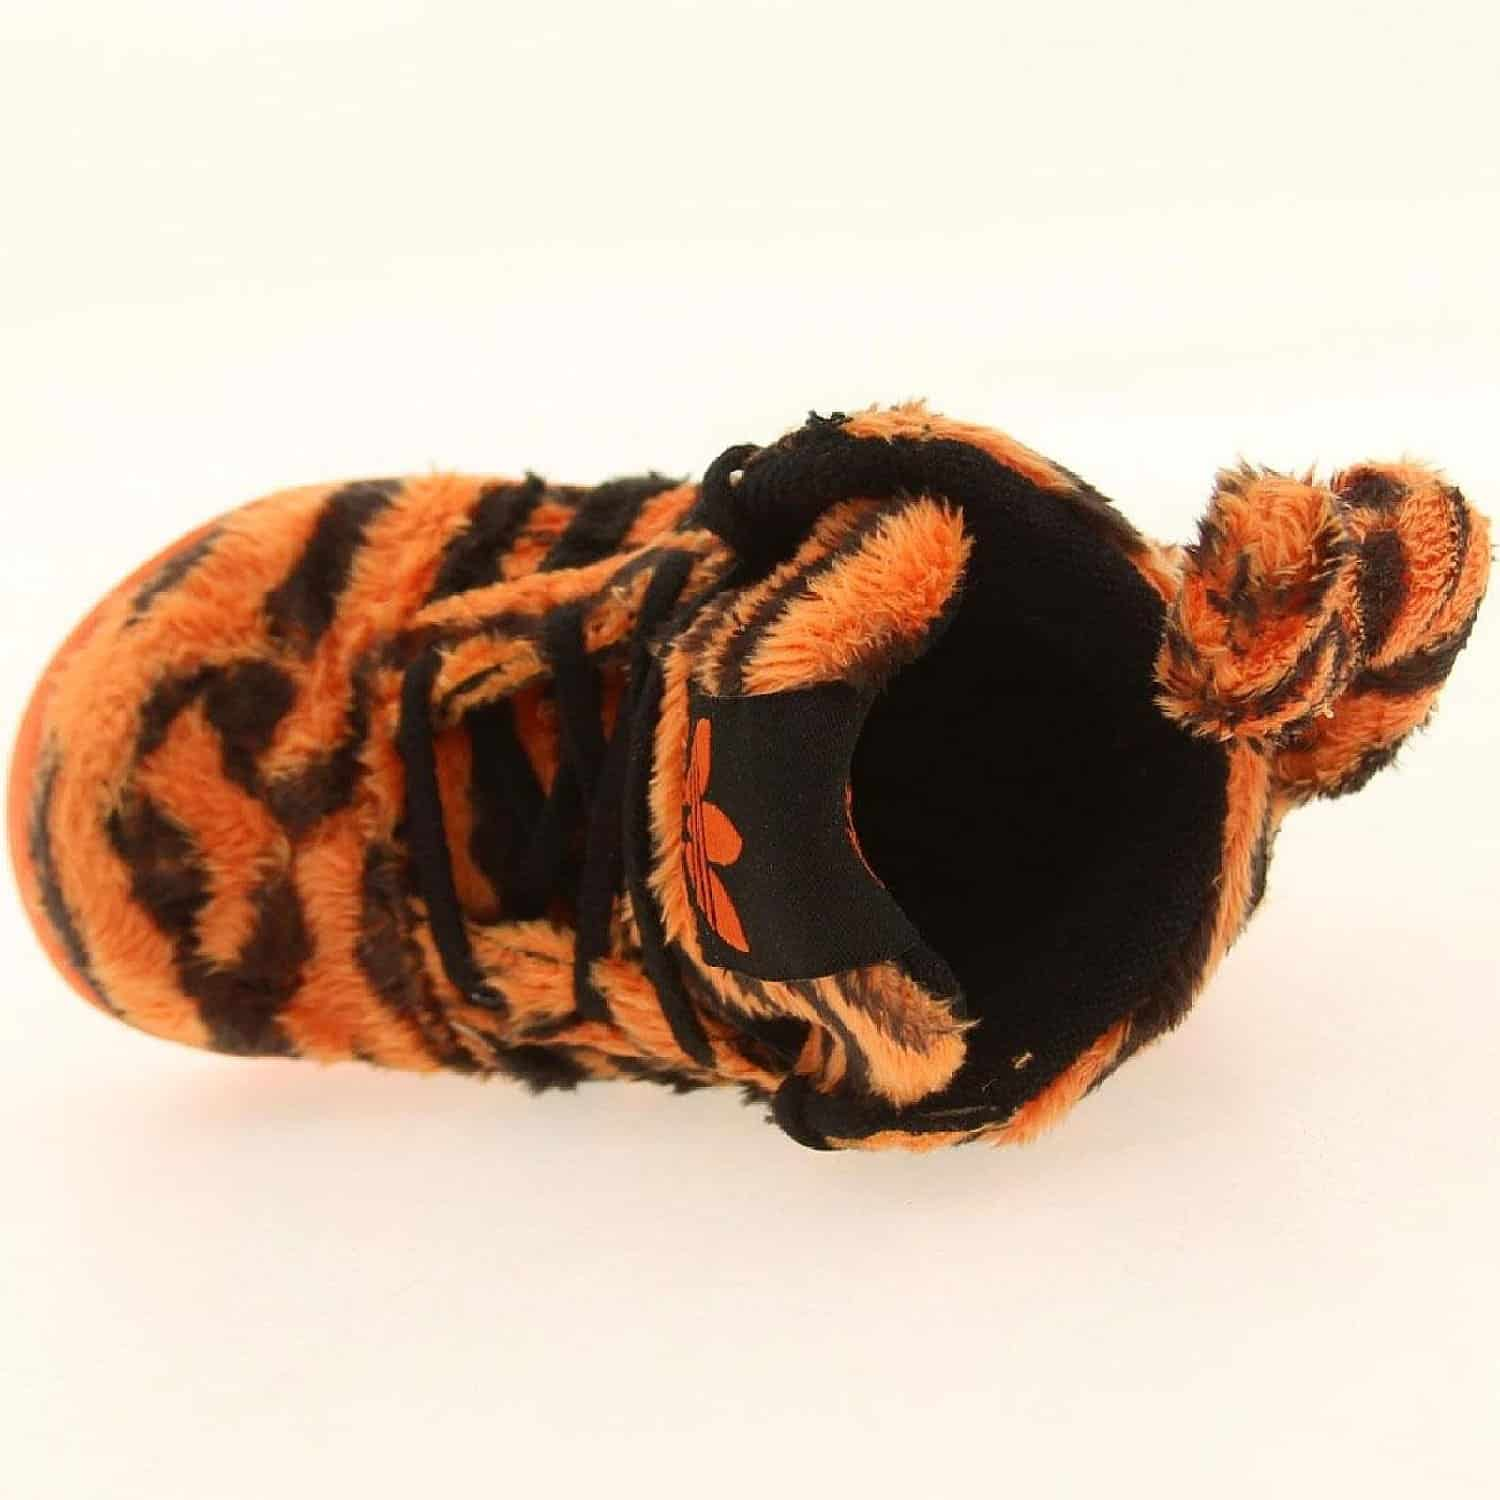 Adidas Jeremy Scott Tiger Furry Toddler Sneakers